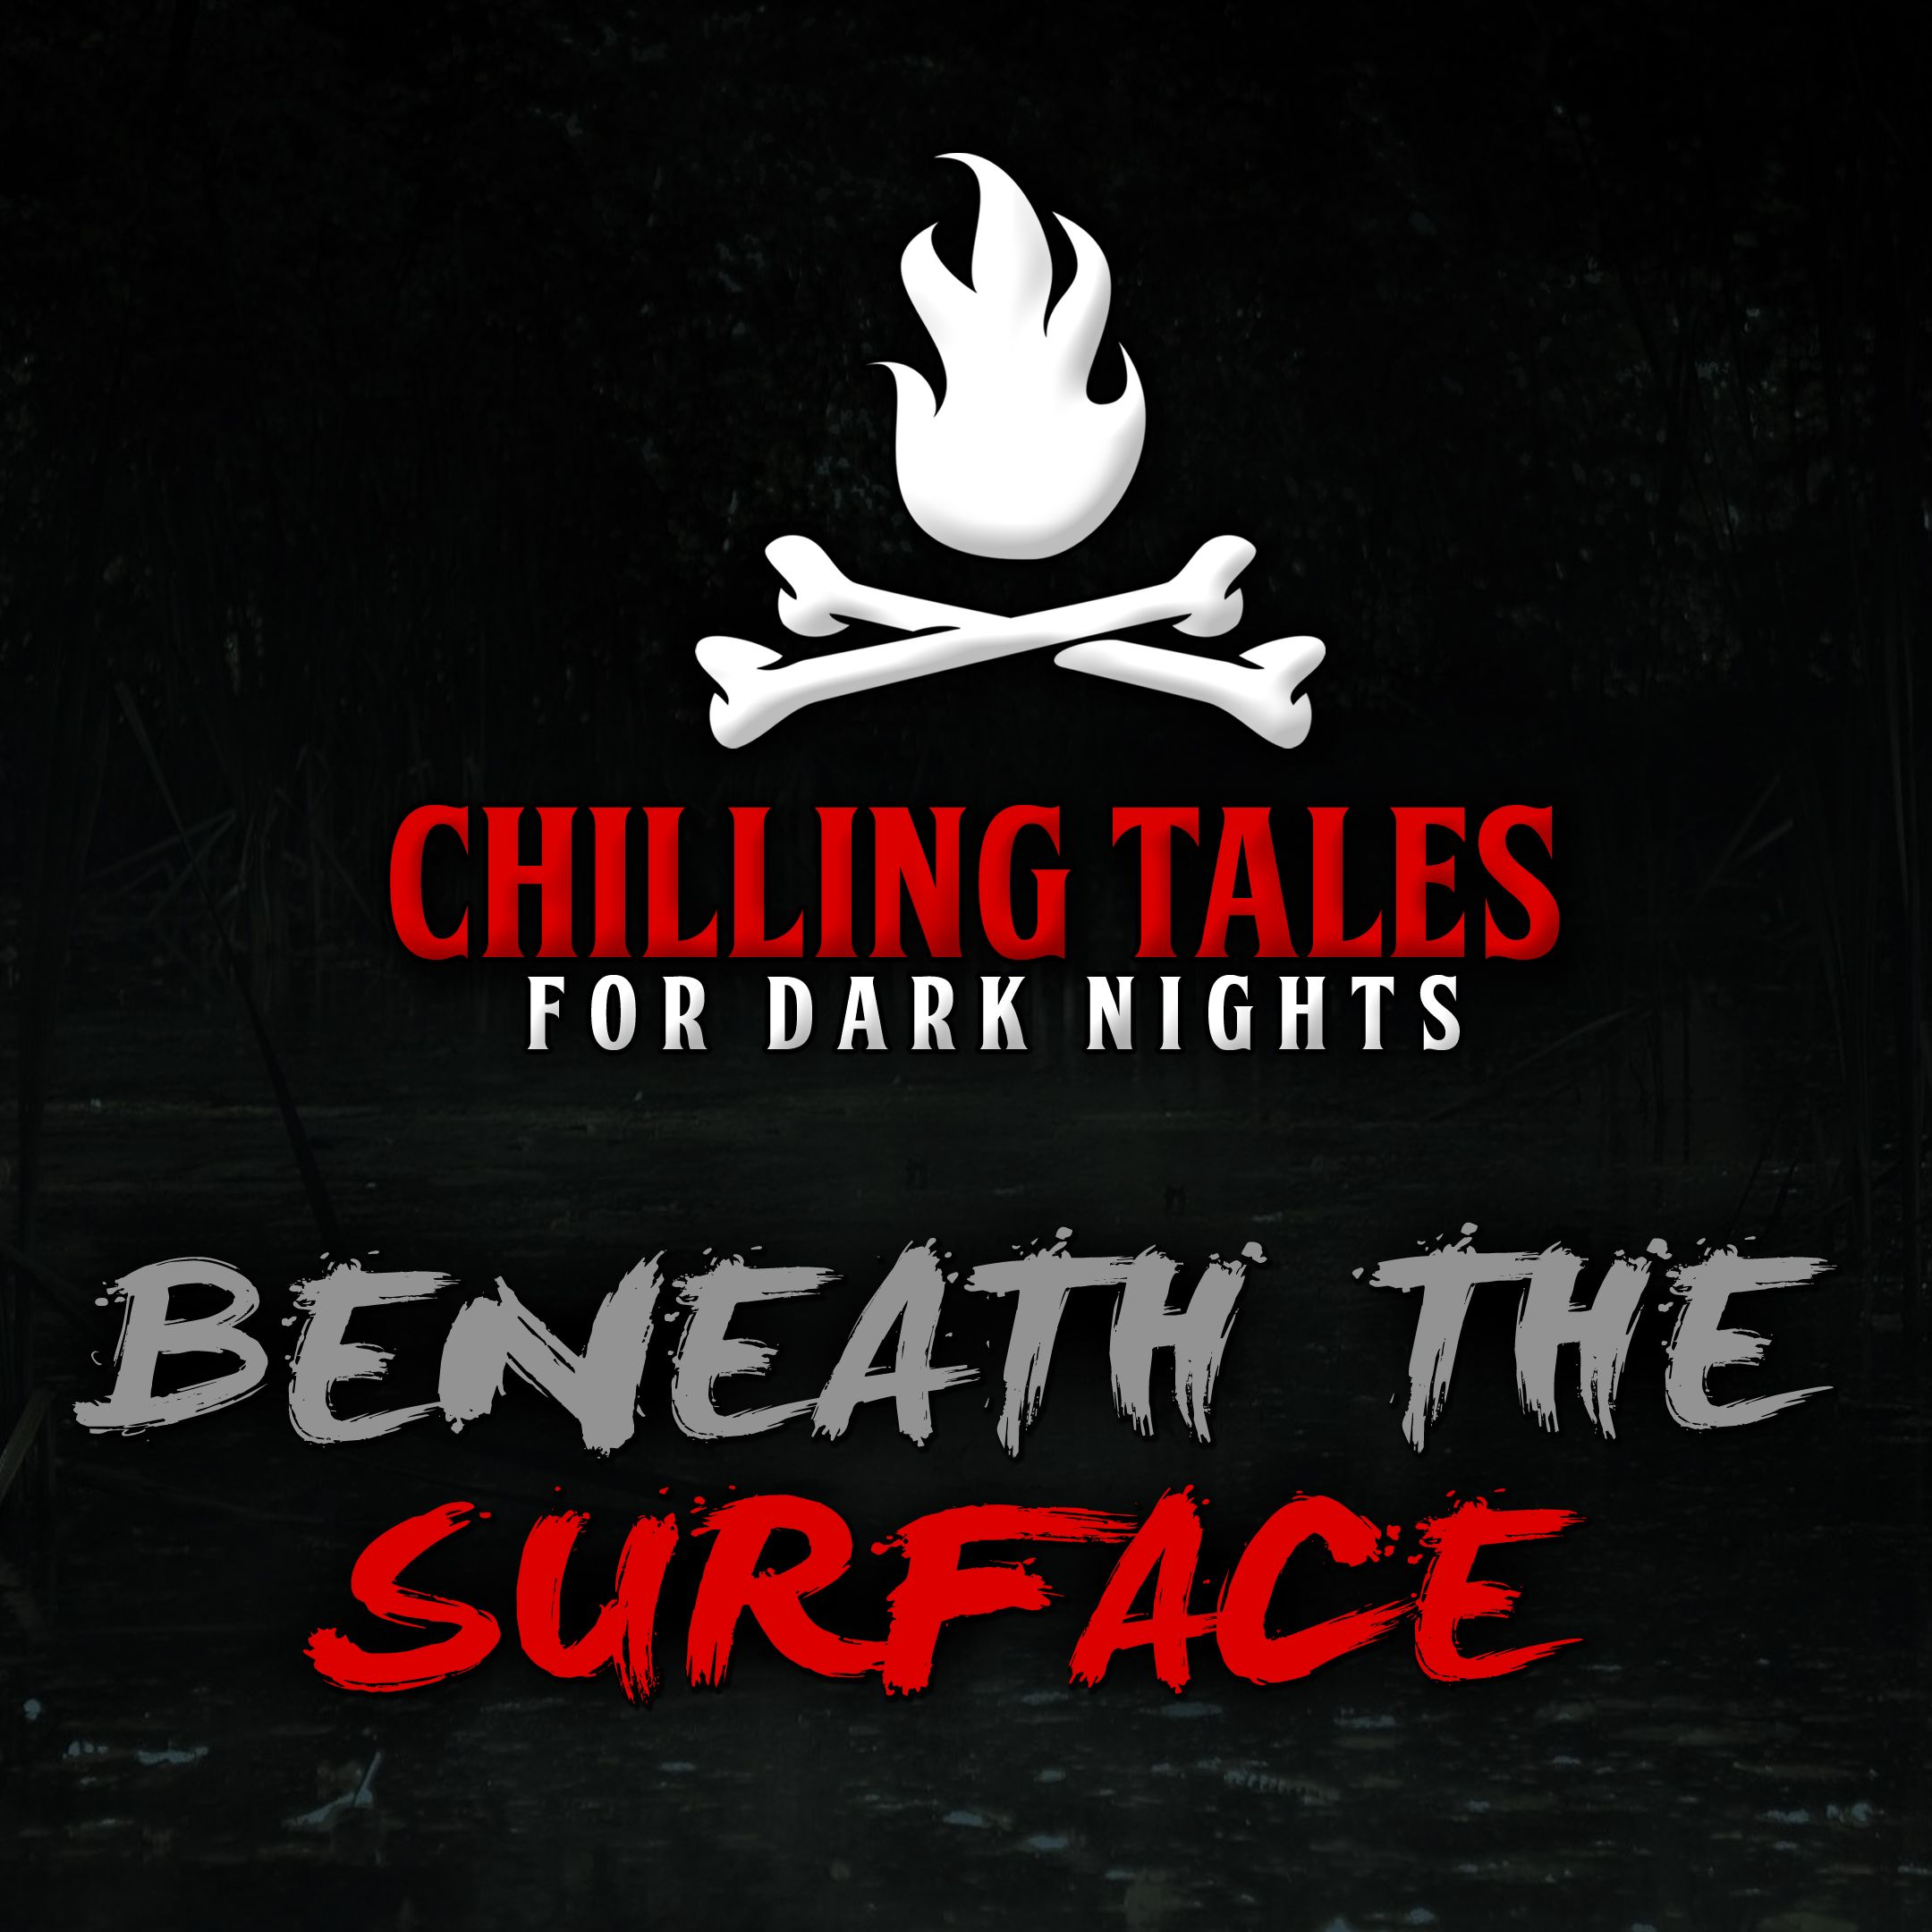 63: Beneath the Surface – Chilling Tales for Dark Nights